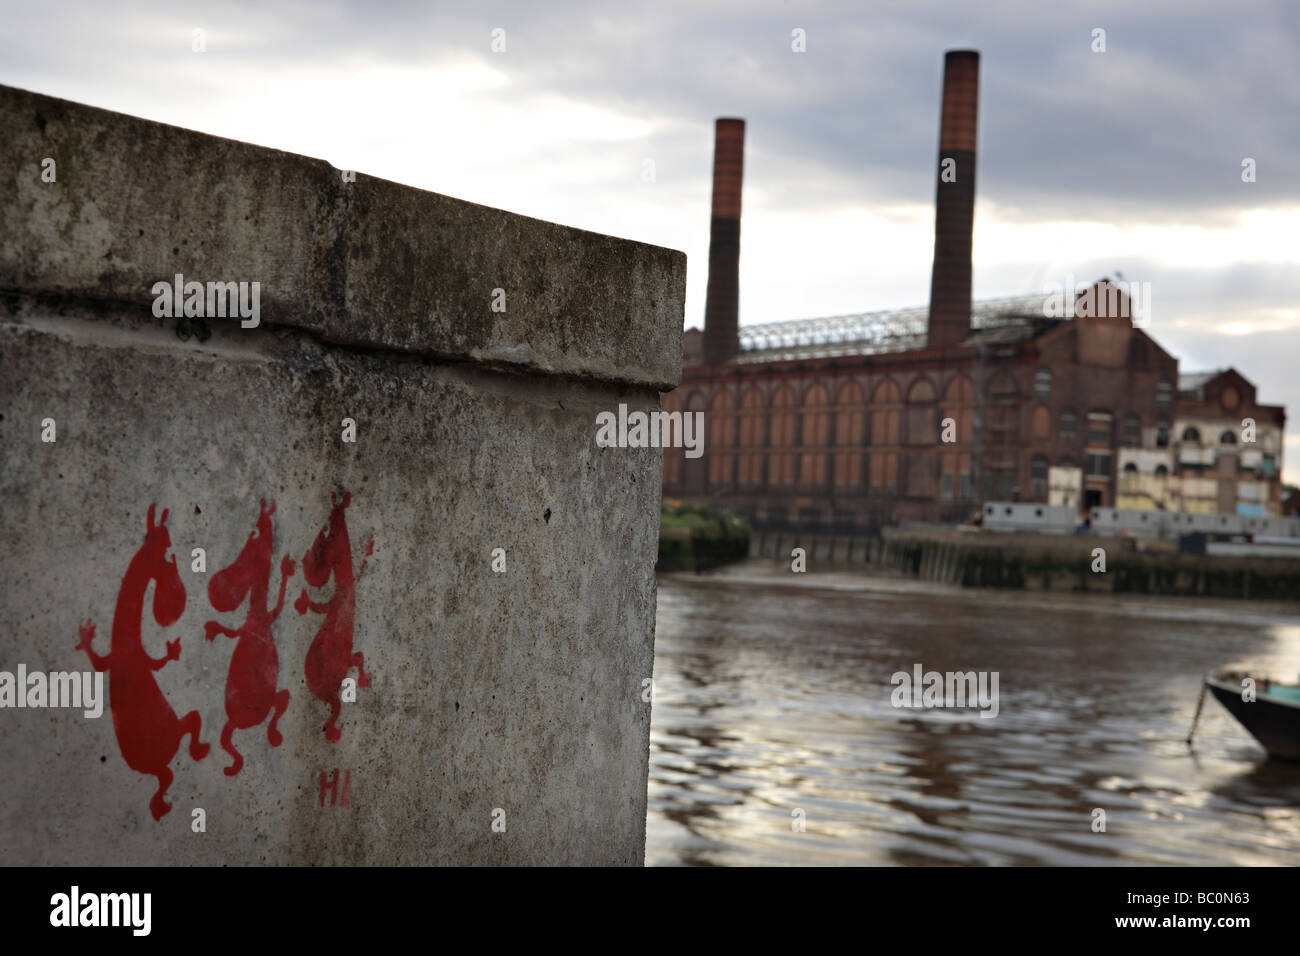 Shot of the River Thames with abandoned factory and three little horses graffity. - Stock Image